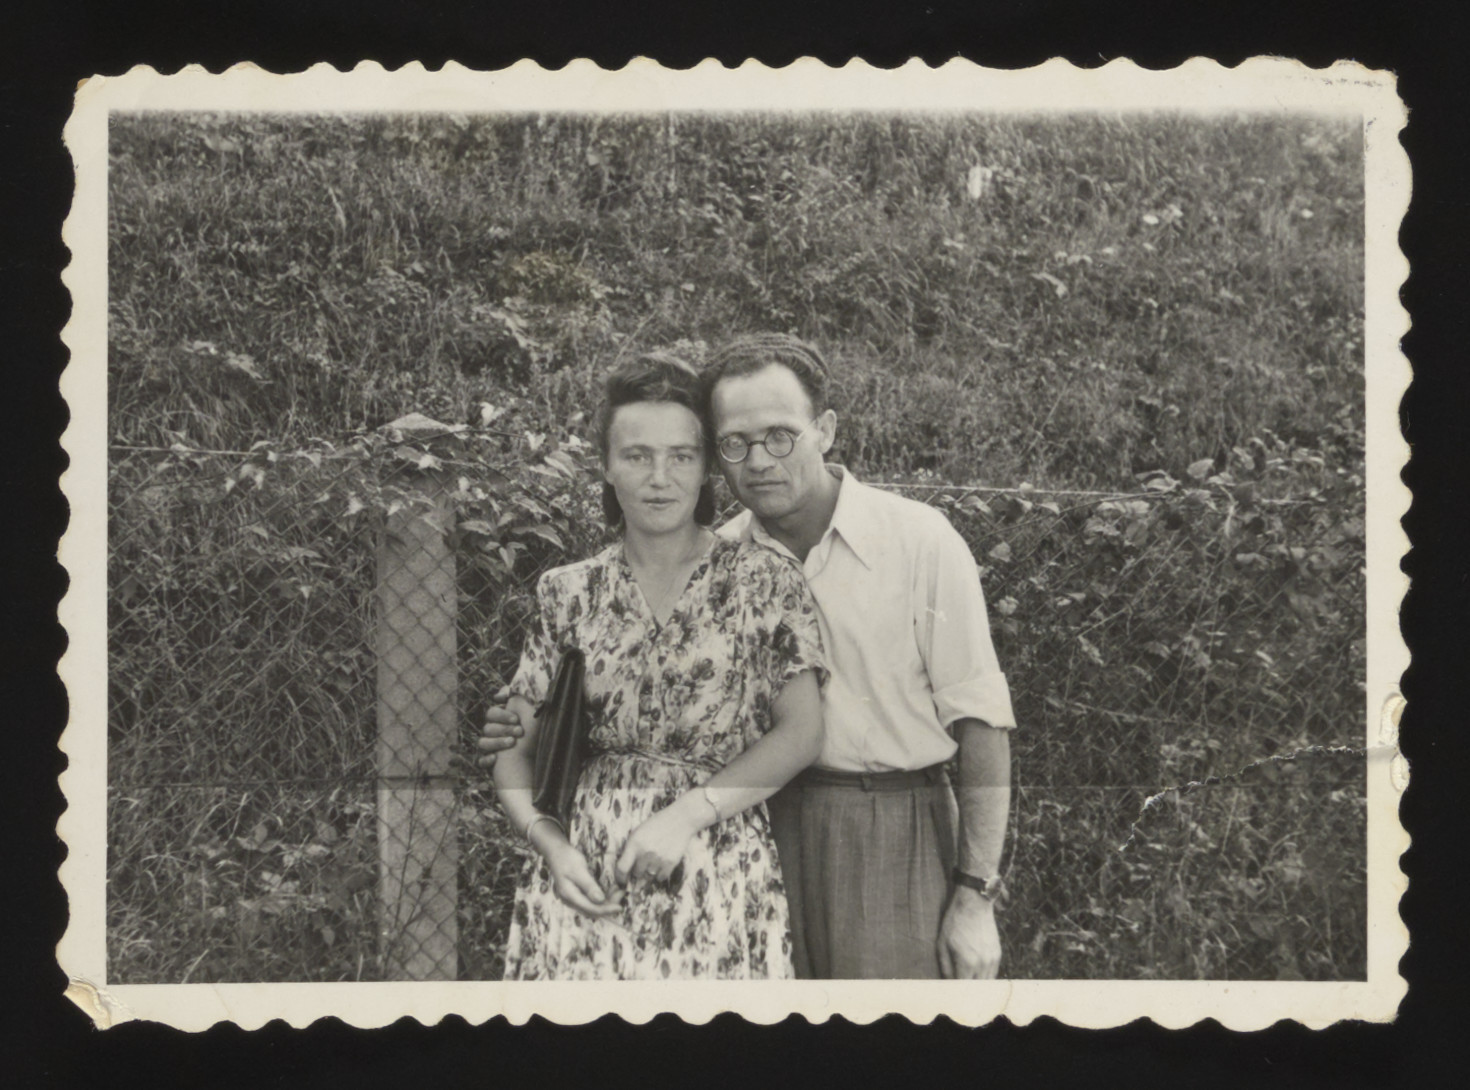 Portrait of a Jewish couple in the Munich displaced persons' camp.  Pictured are Lifcia and Lewek Szabason.